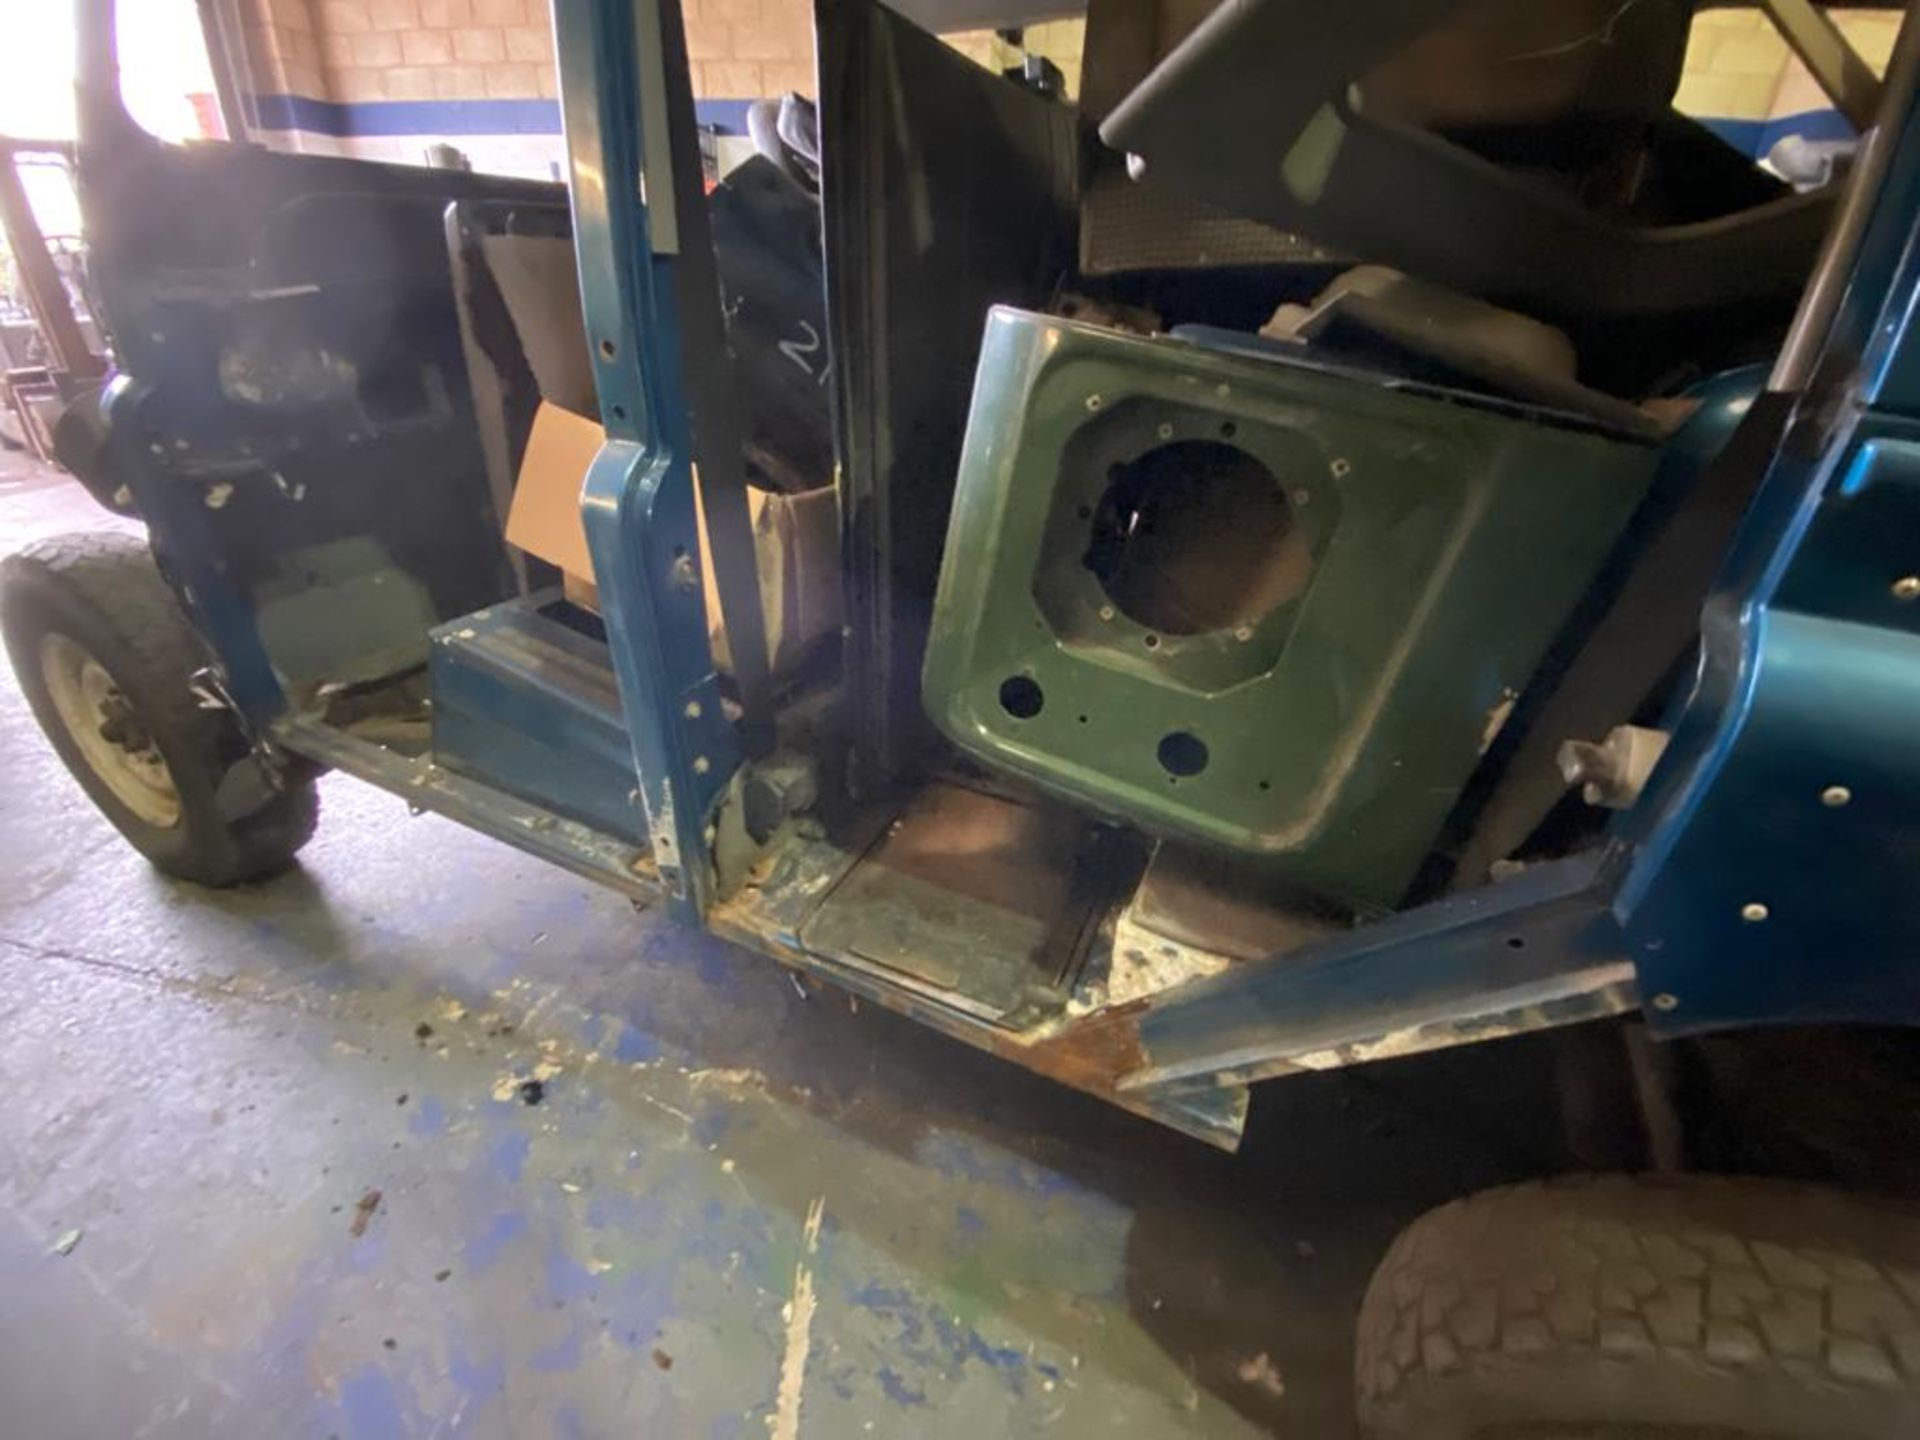 Land Rover 110 County, 300 TDI Engine Appears Mostly Complete - No Bumper, Bonnet, Glass etc As - Image 22 of 26